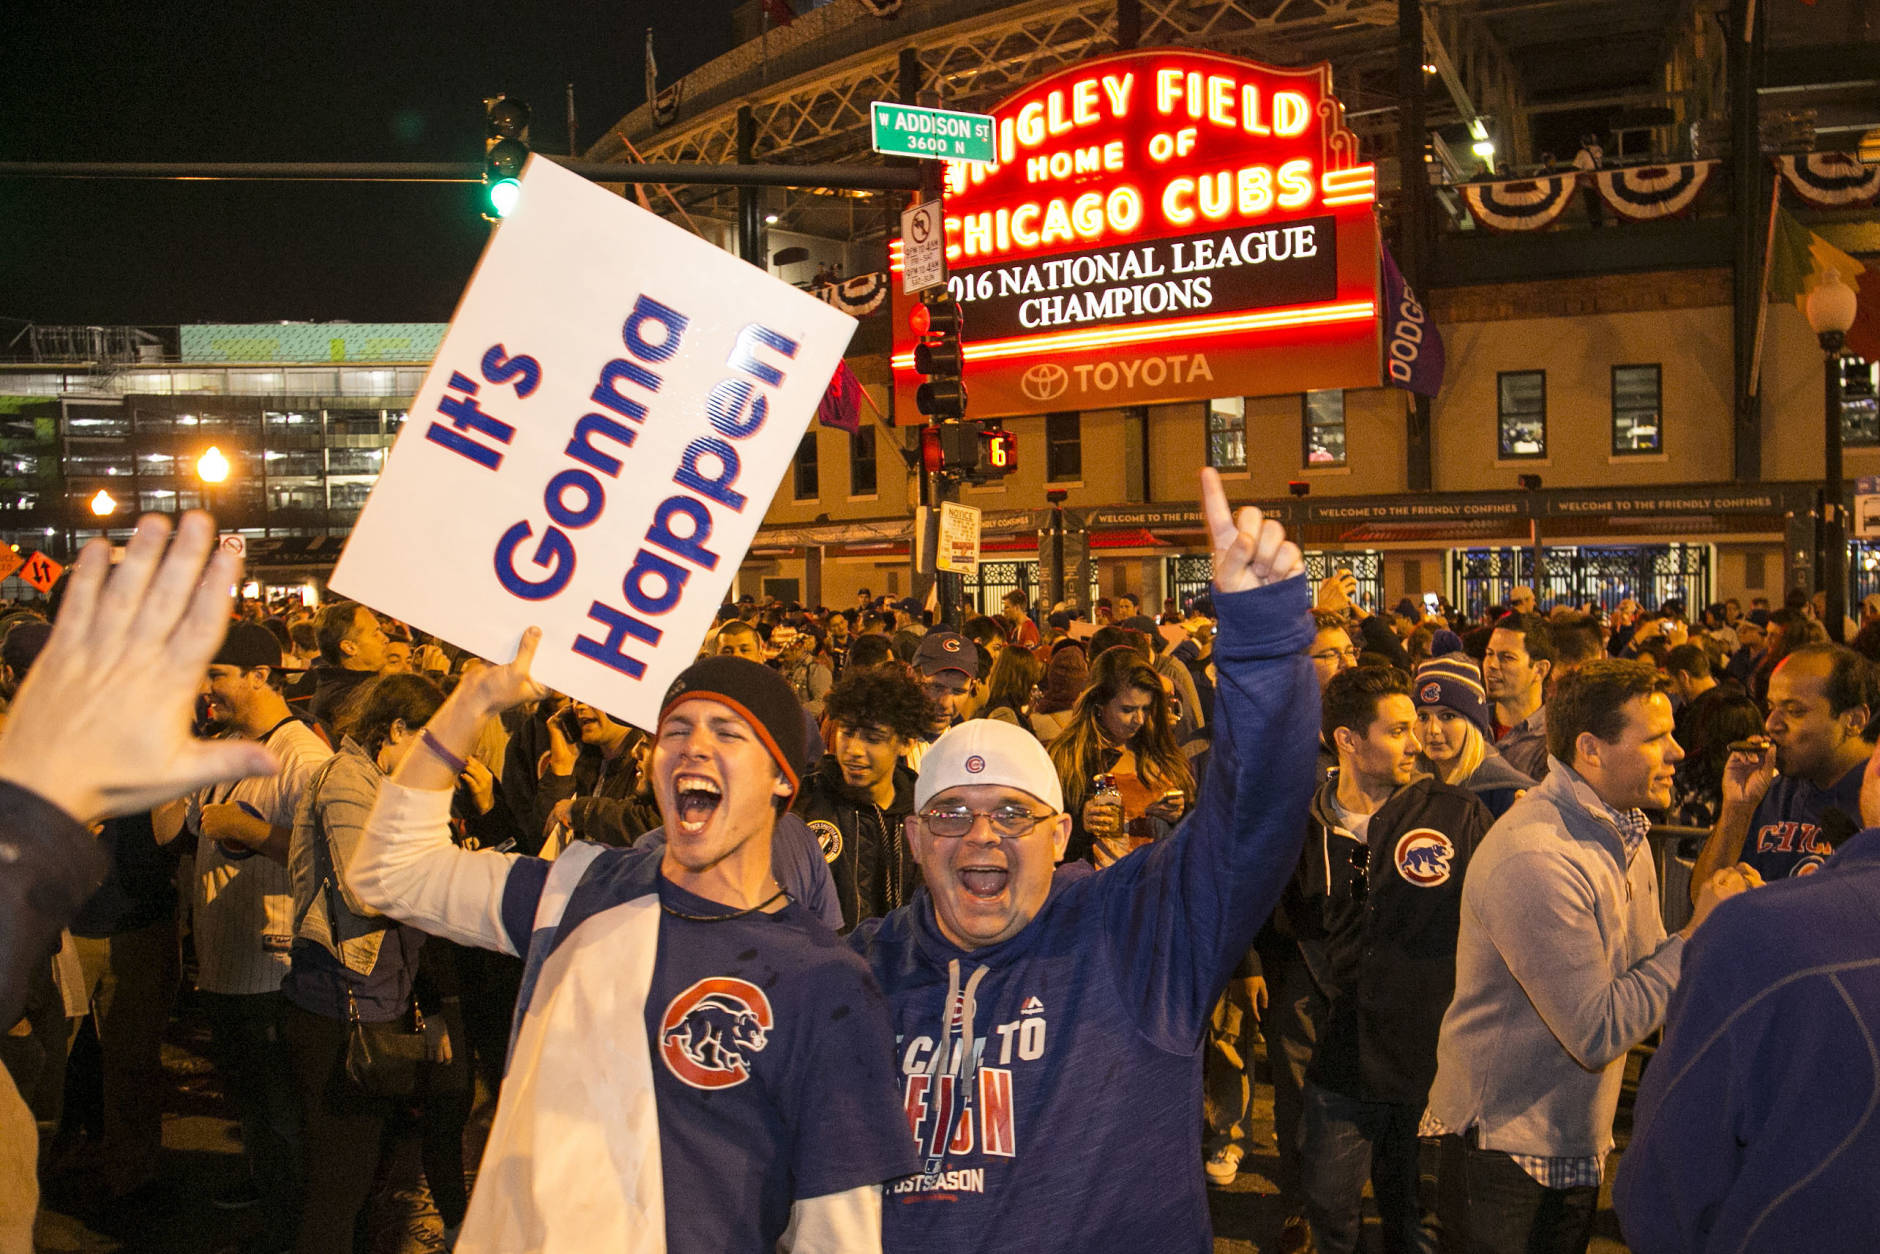 For The First Time In 71 Years, The Cubs Are NL Pennant Winners